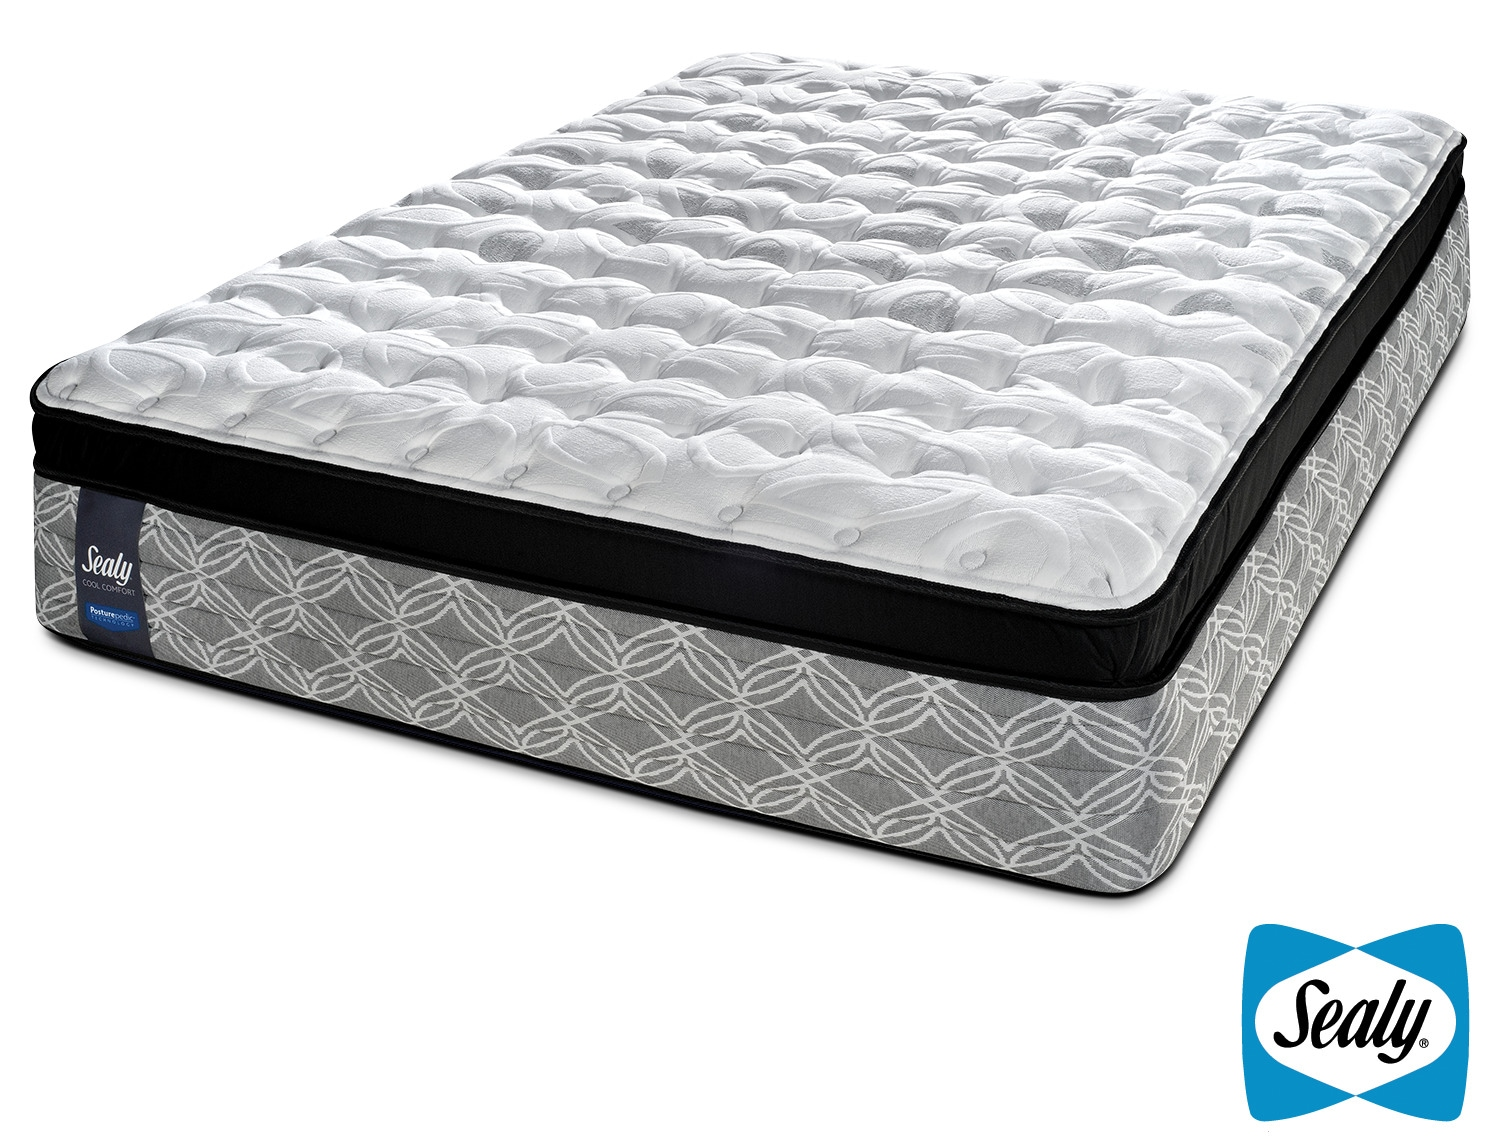 Sealy Sundown Plush King Mattress